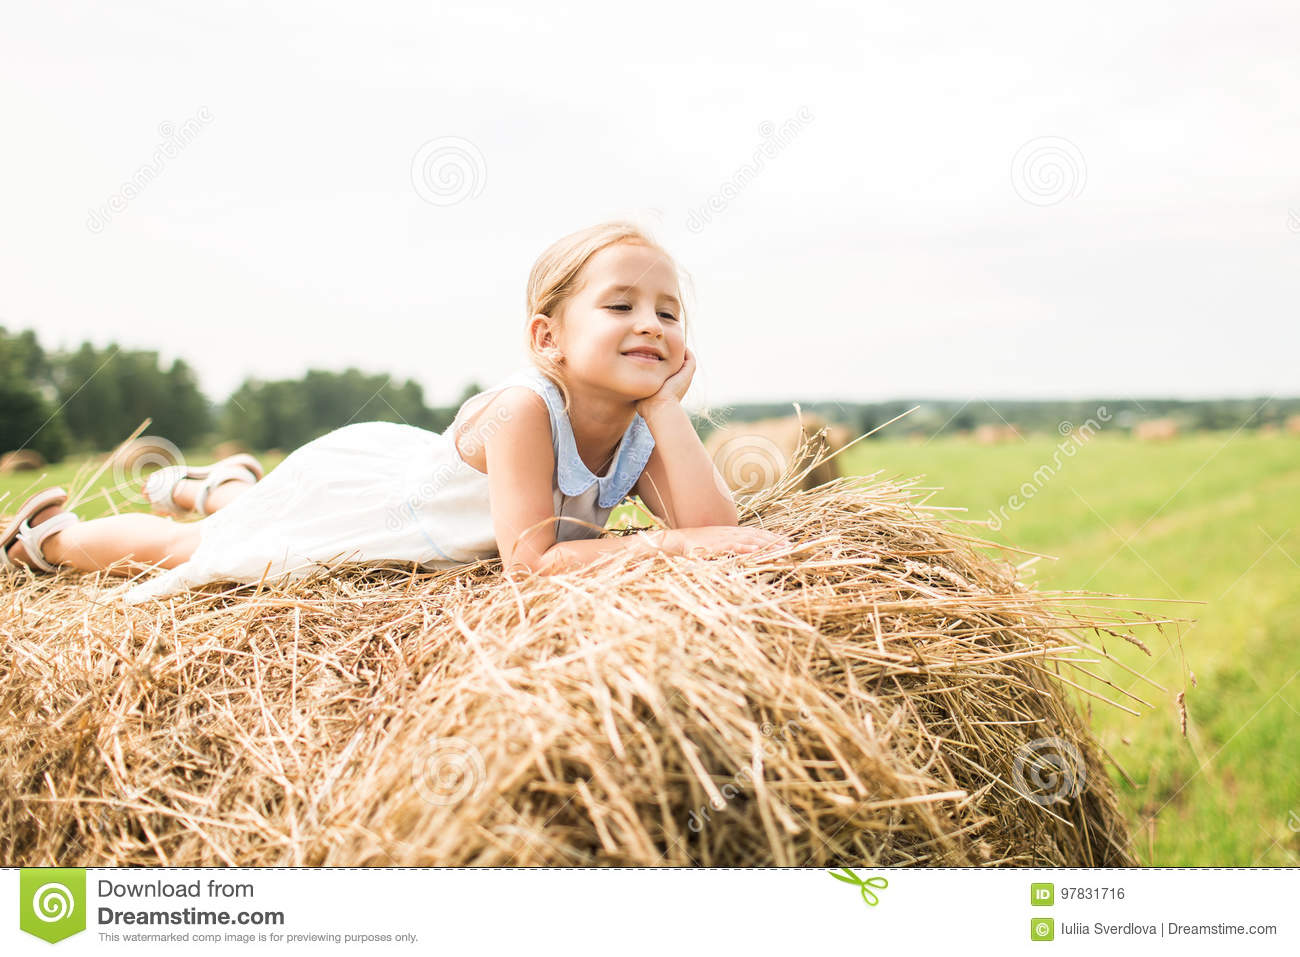 Little girl is sitting on a haystack, a summer concept